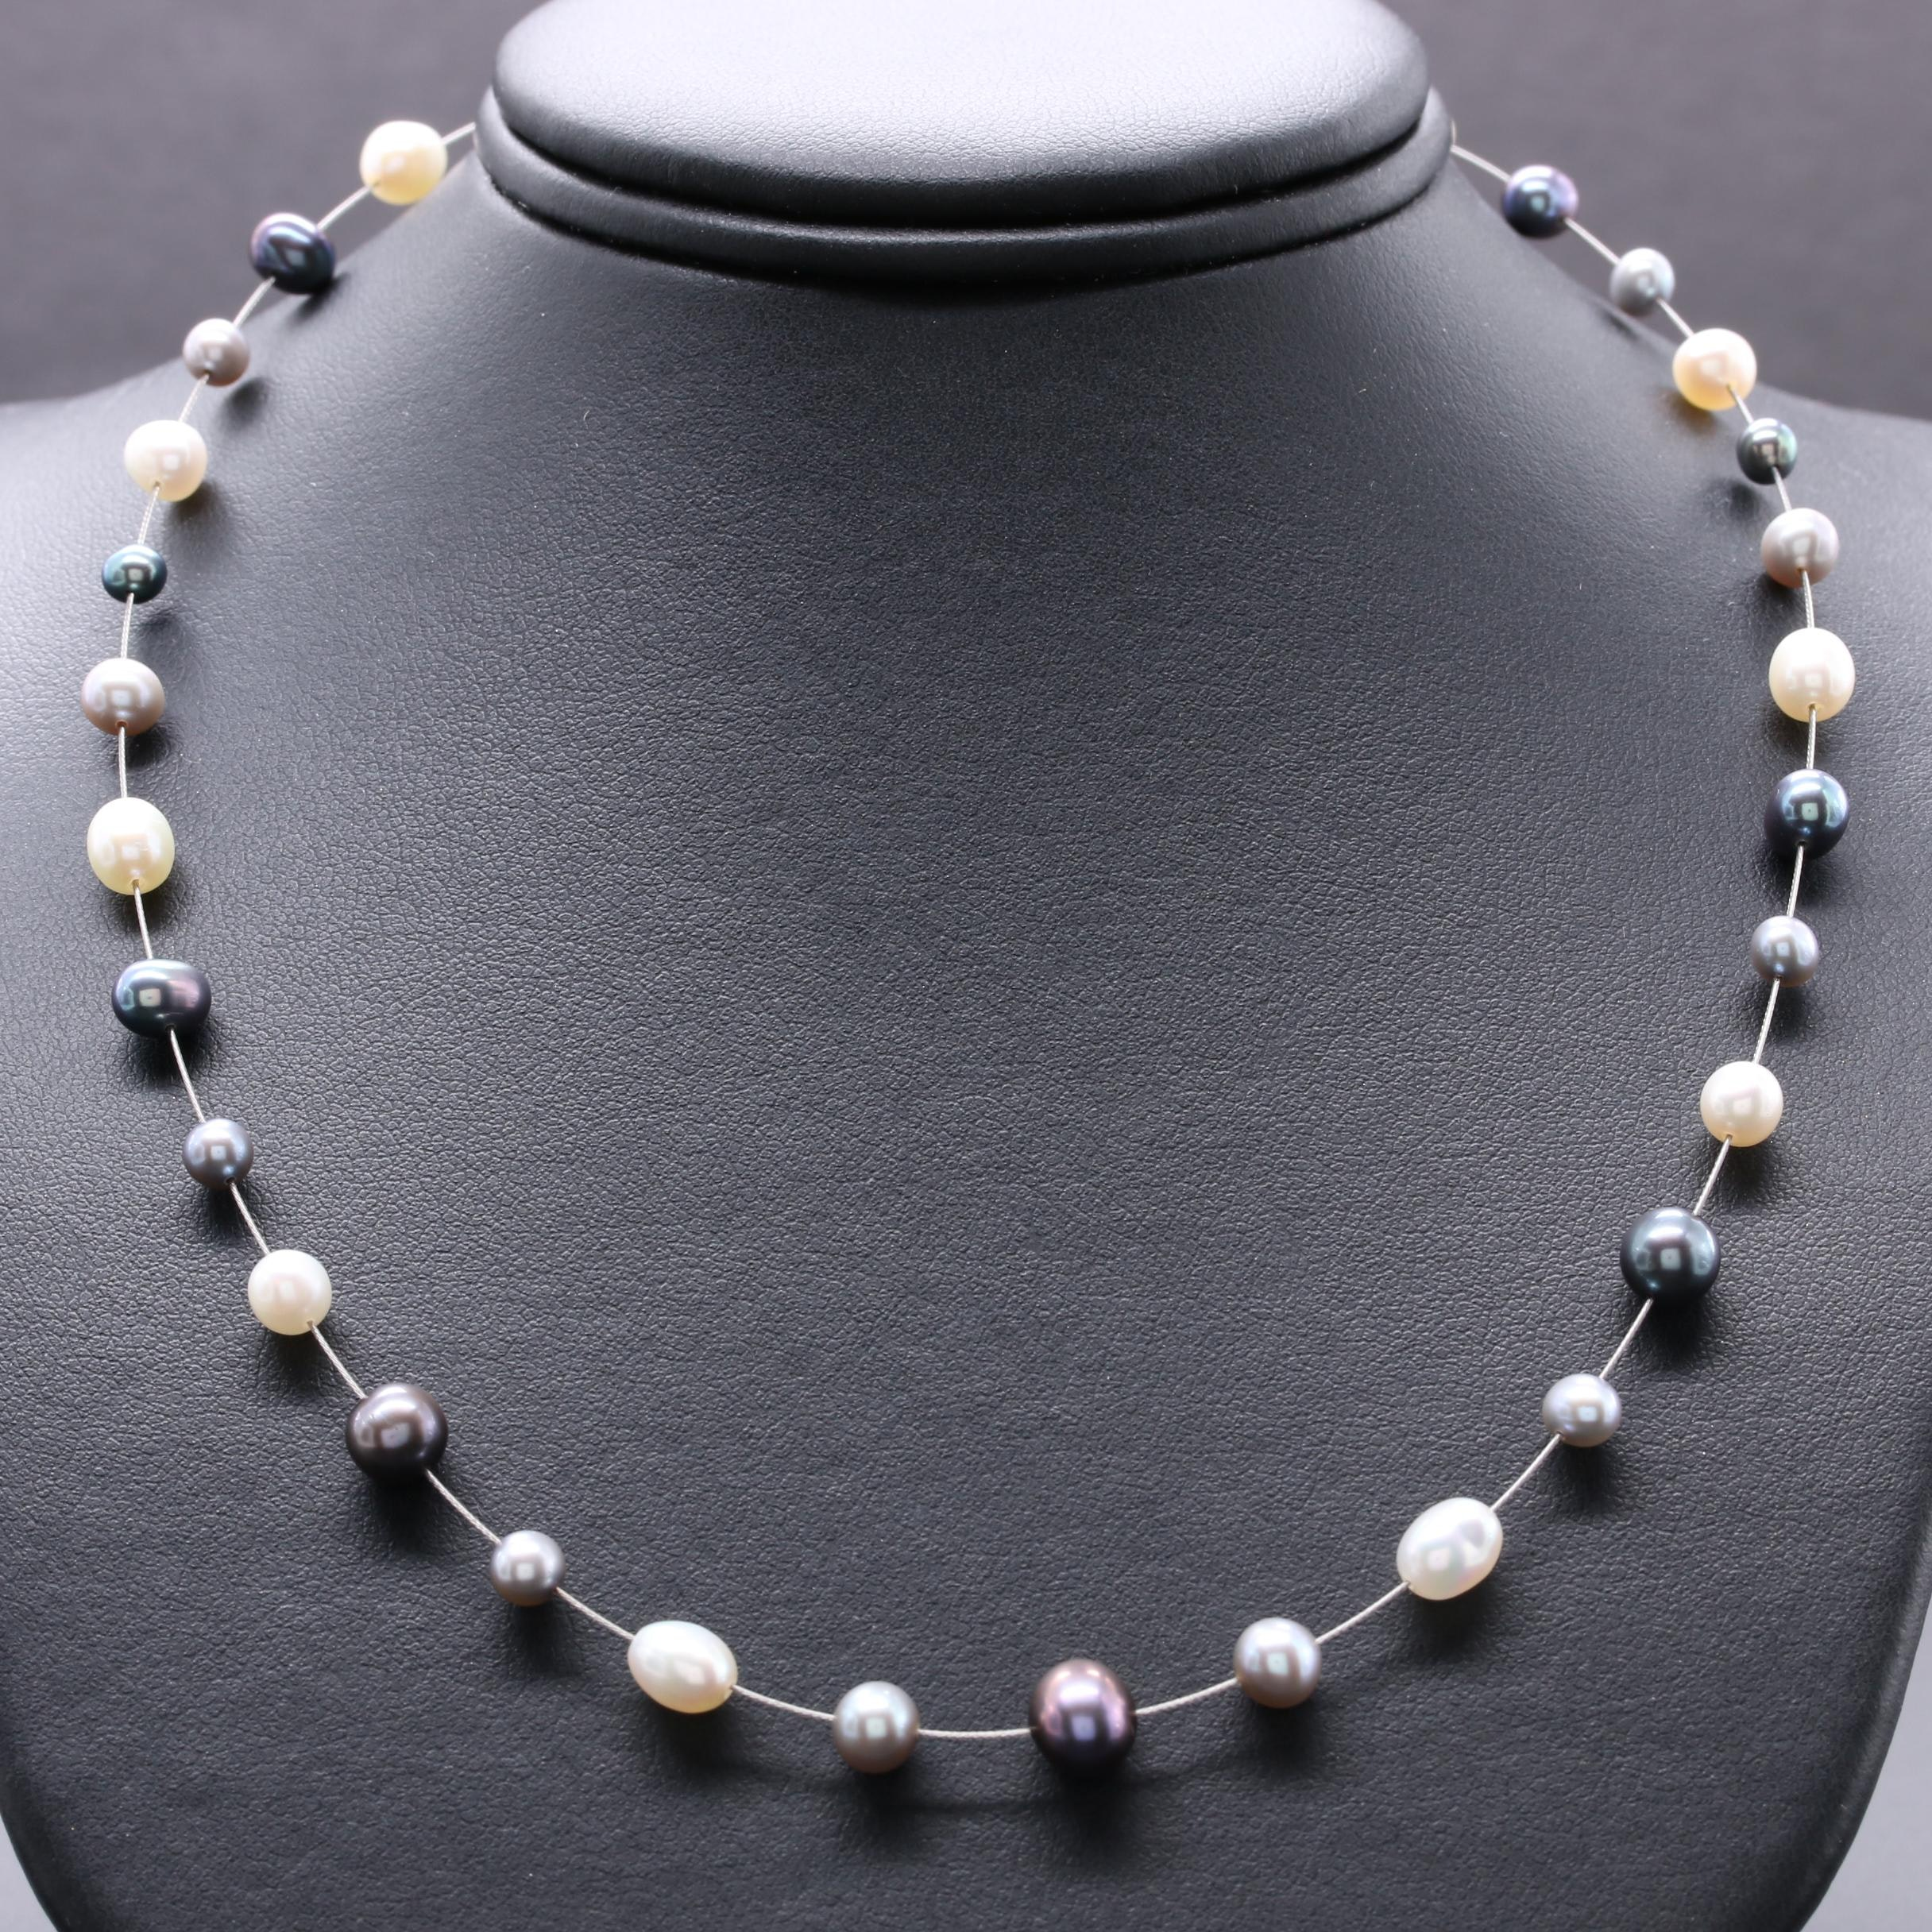 14K Yellow Gold and Silver Tone Cultured Pearl Necklace